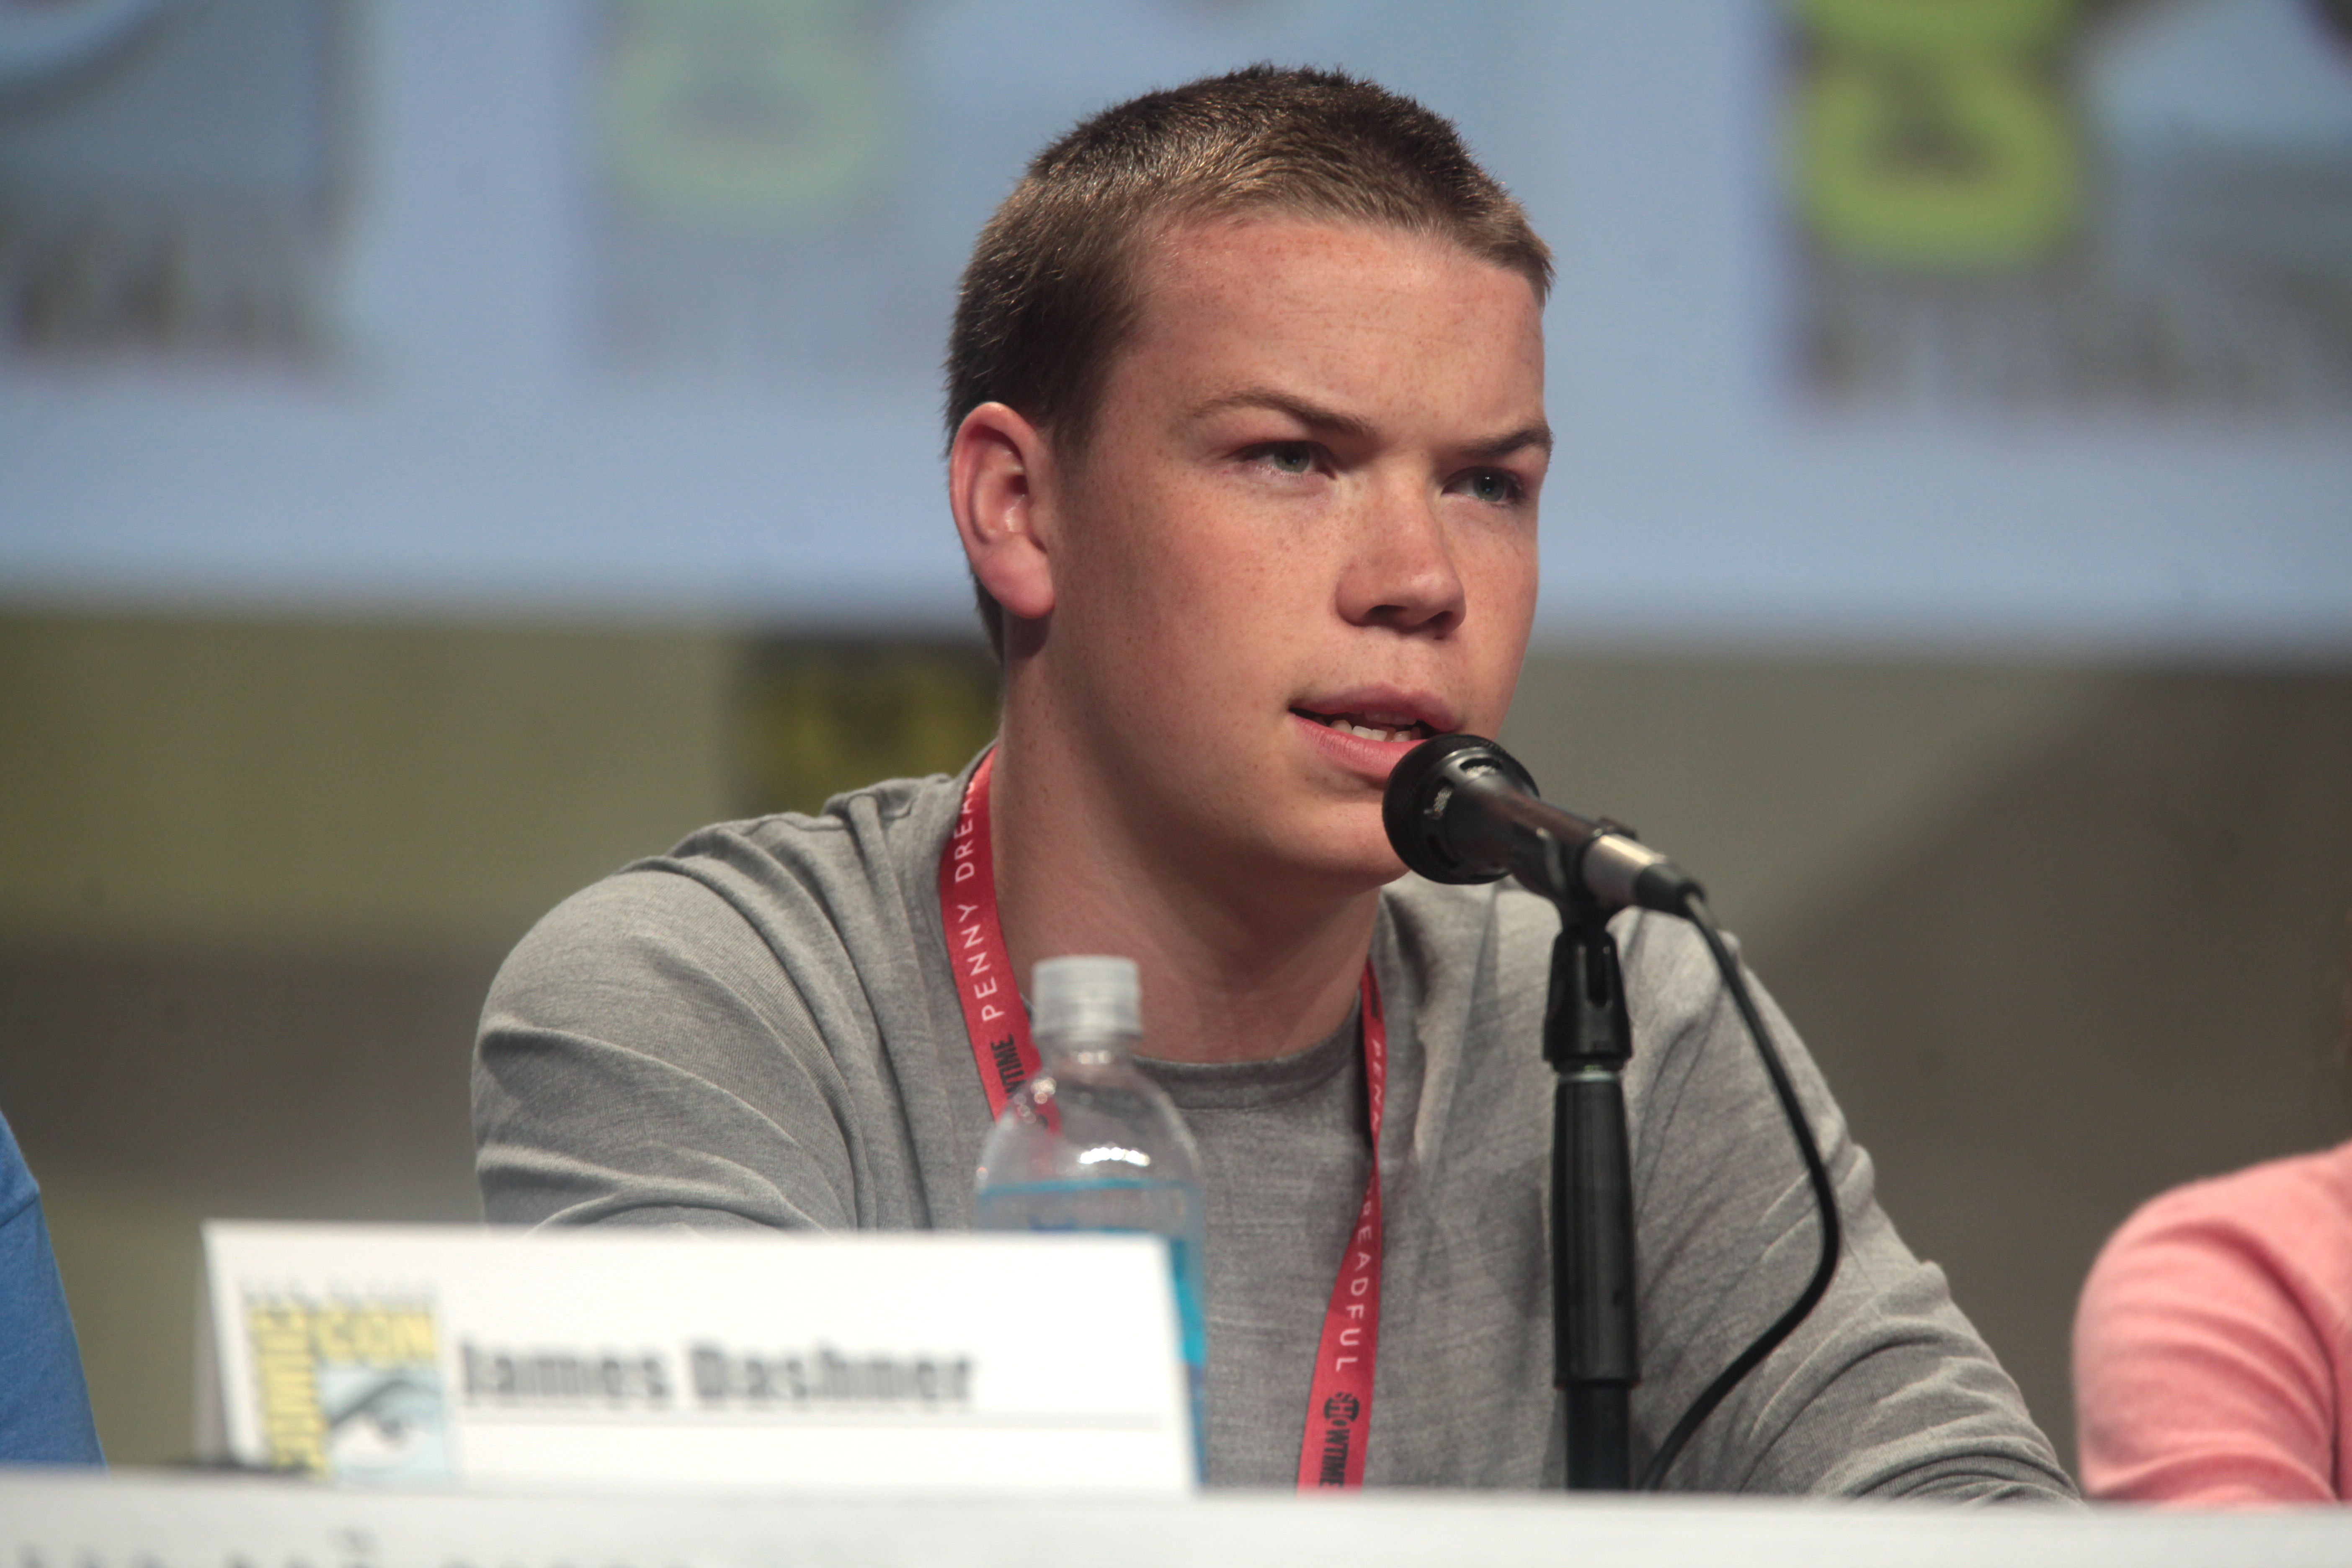 will poulter twitter